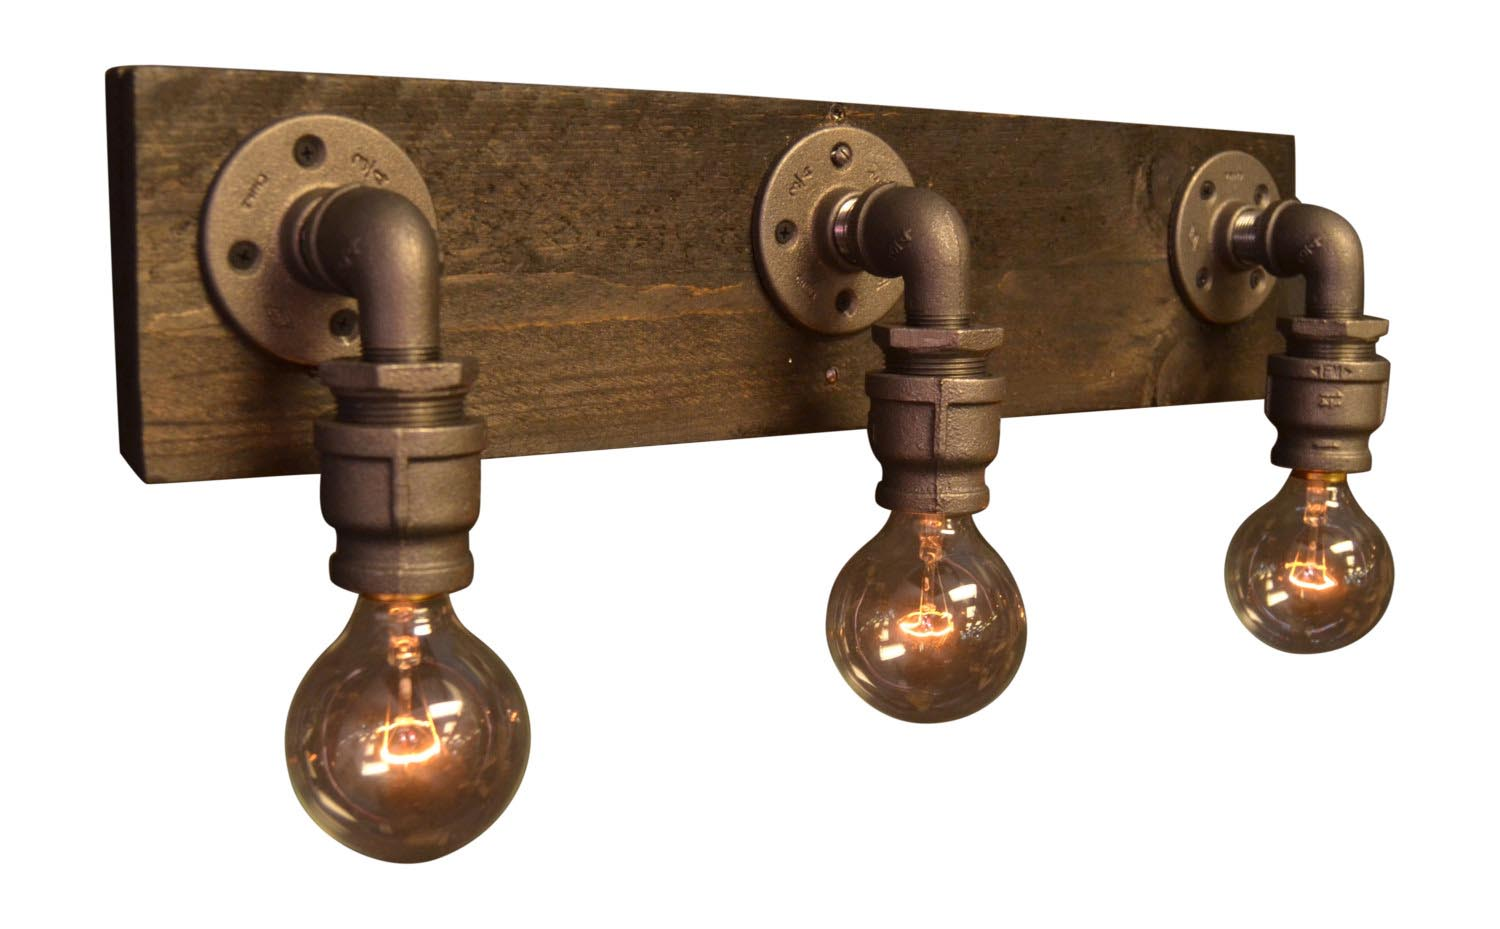 Antique Wall Light Fixtures